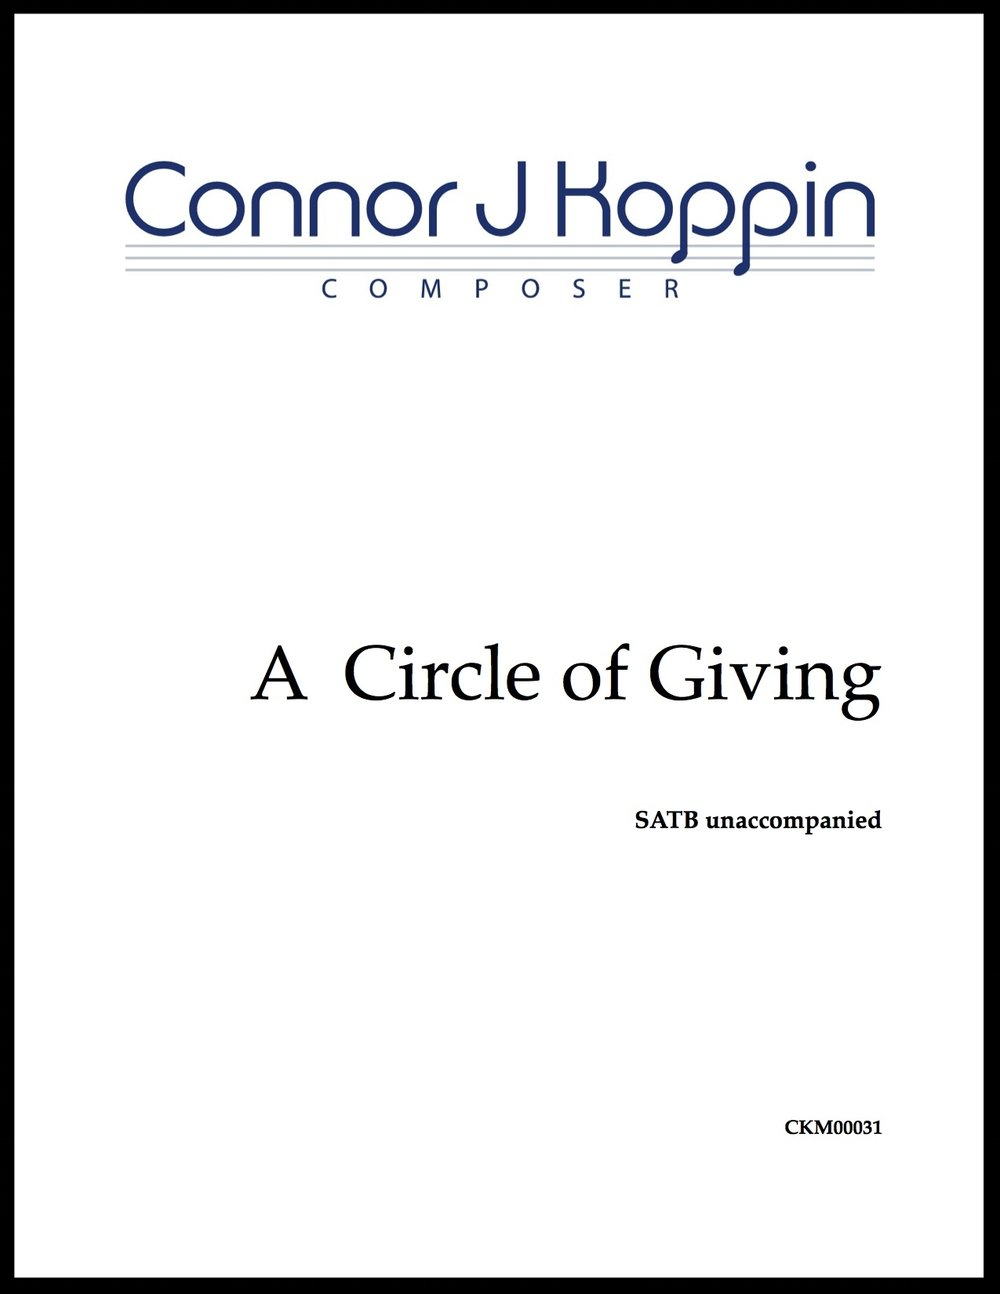 A Circle of Giving cover image jpeg.jpg